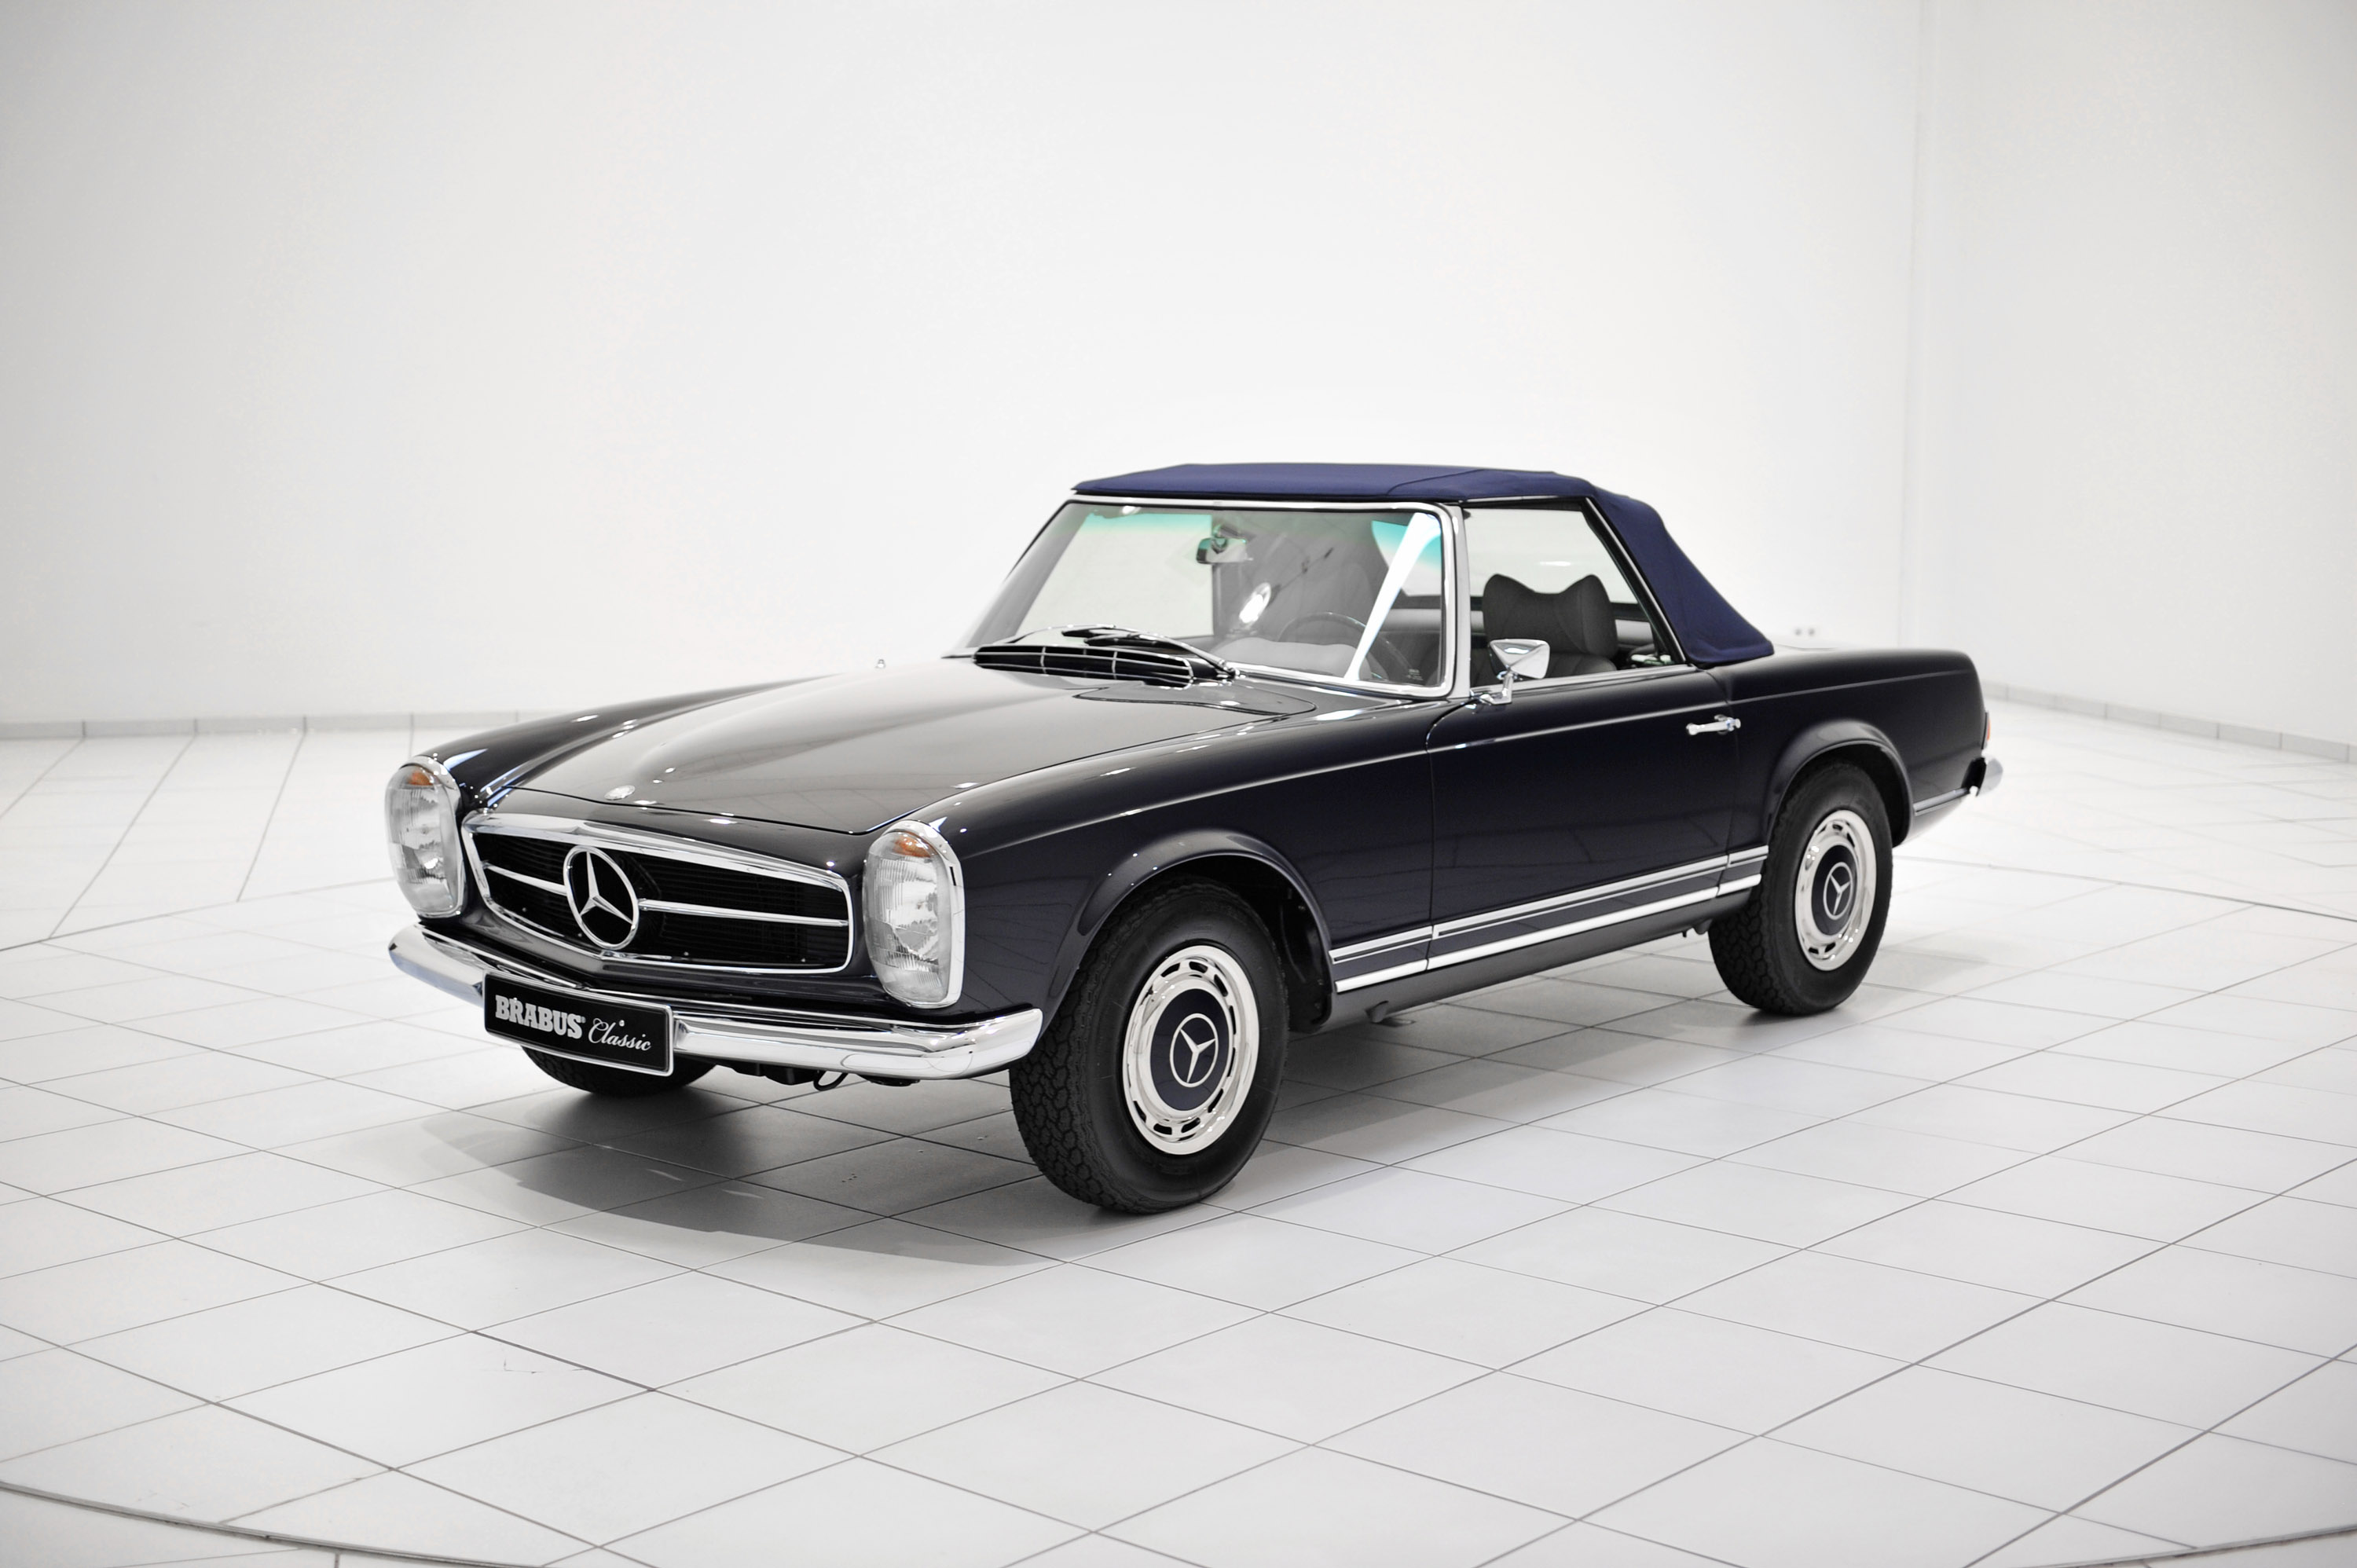 Brabus classic mercedes benz 280 sl pagoda w 113 picture for Mercedes benz 280sl pagoda